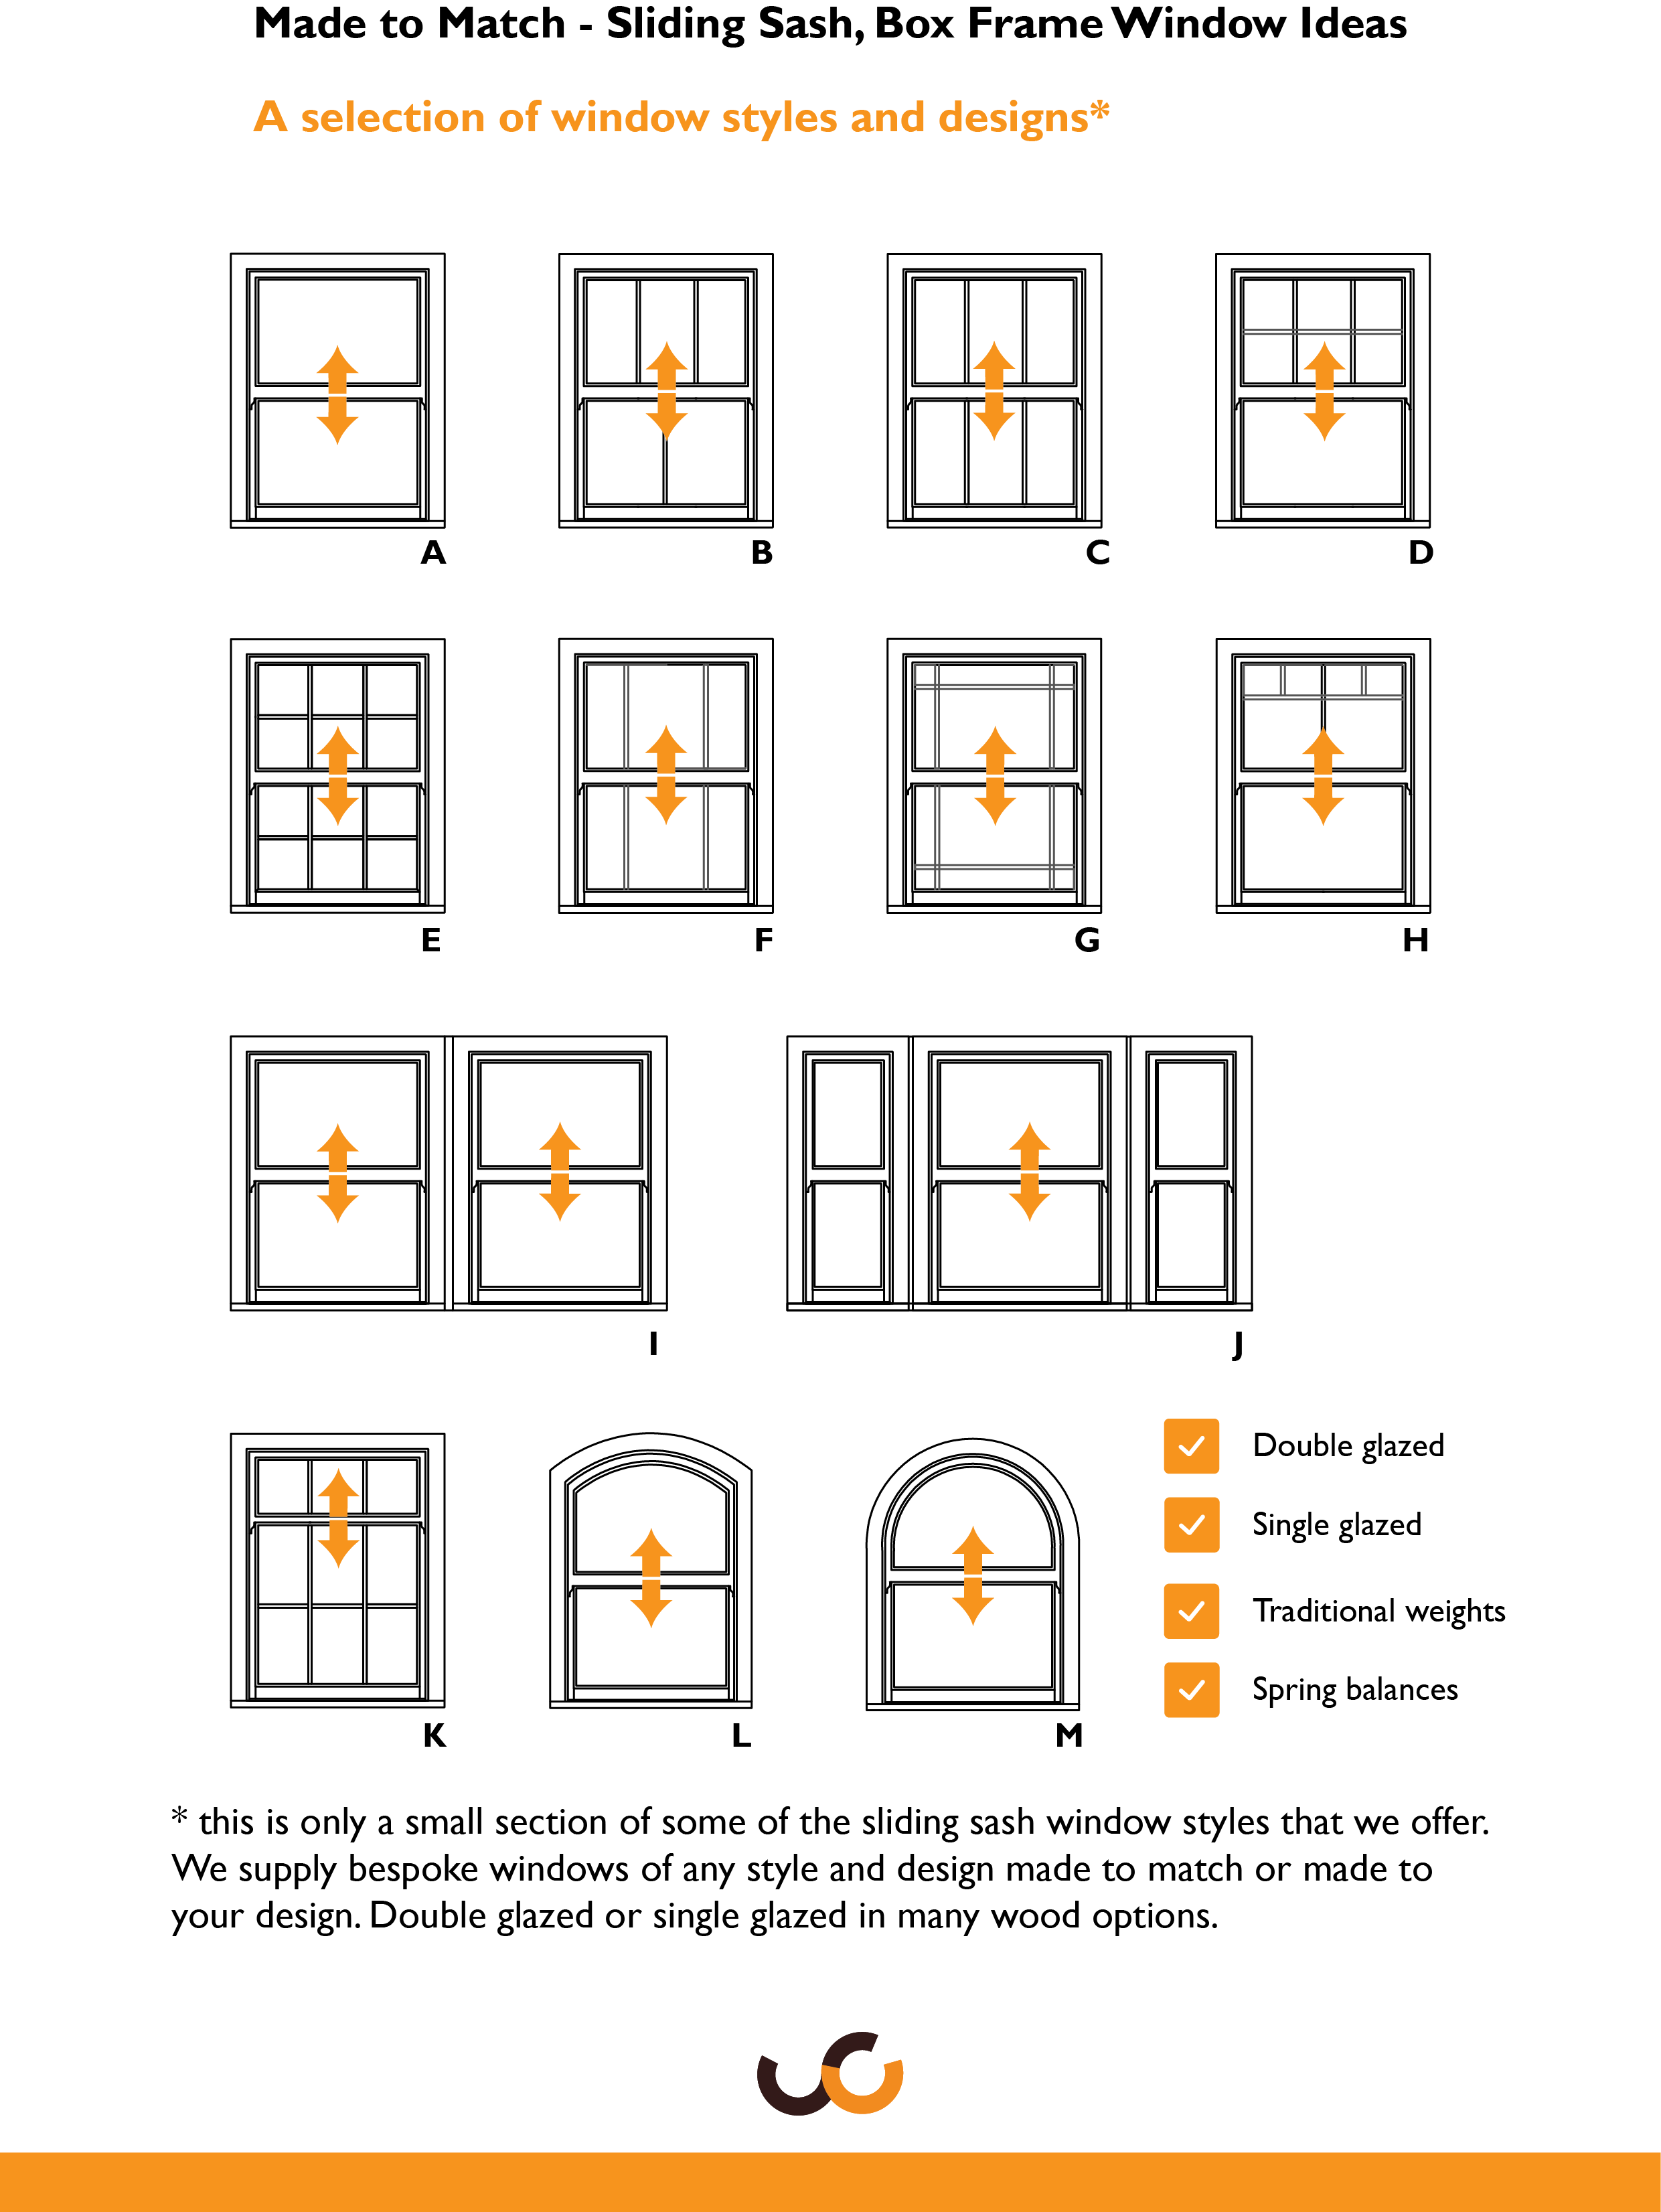 Sliding Sash Window designs